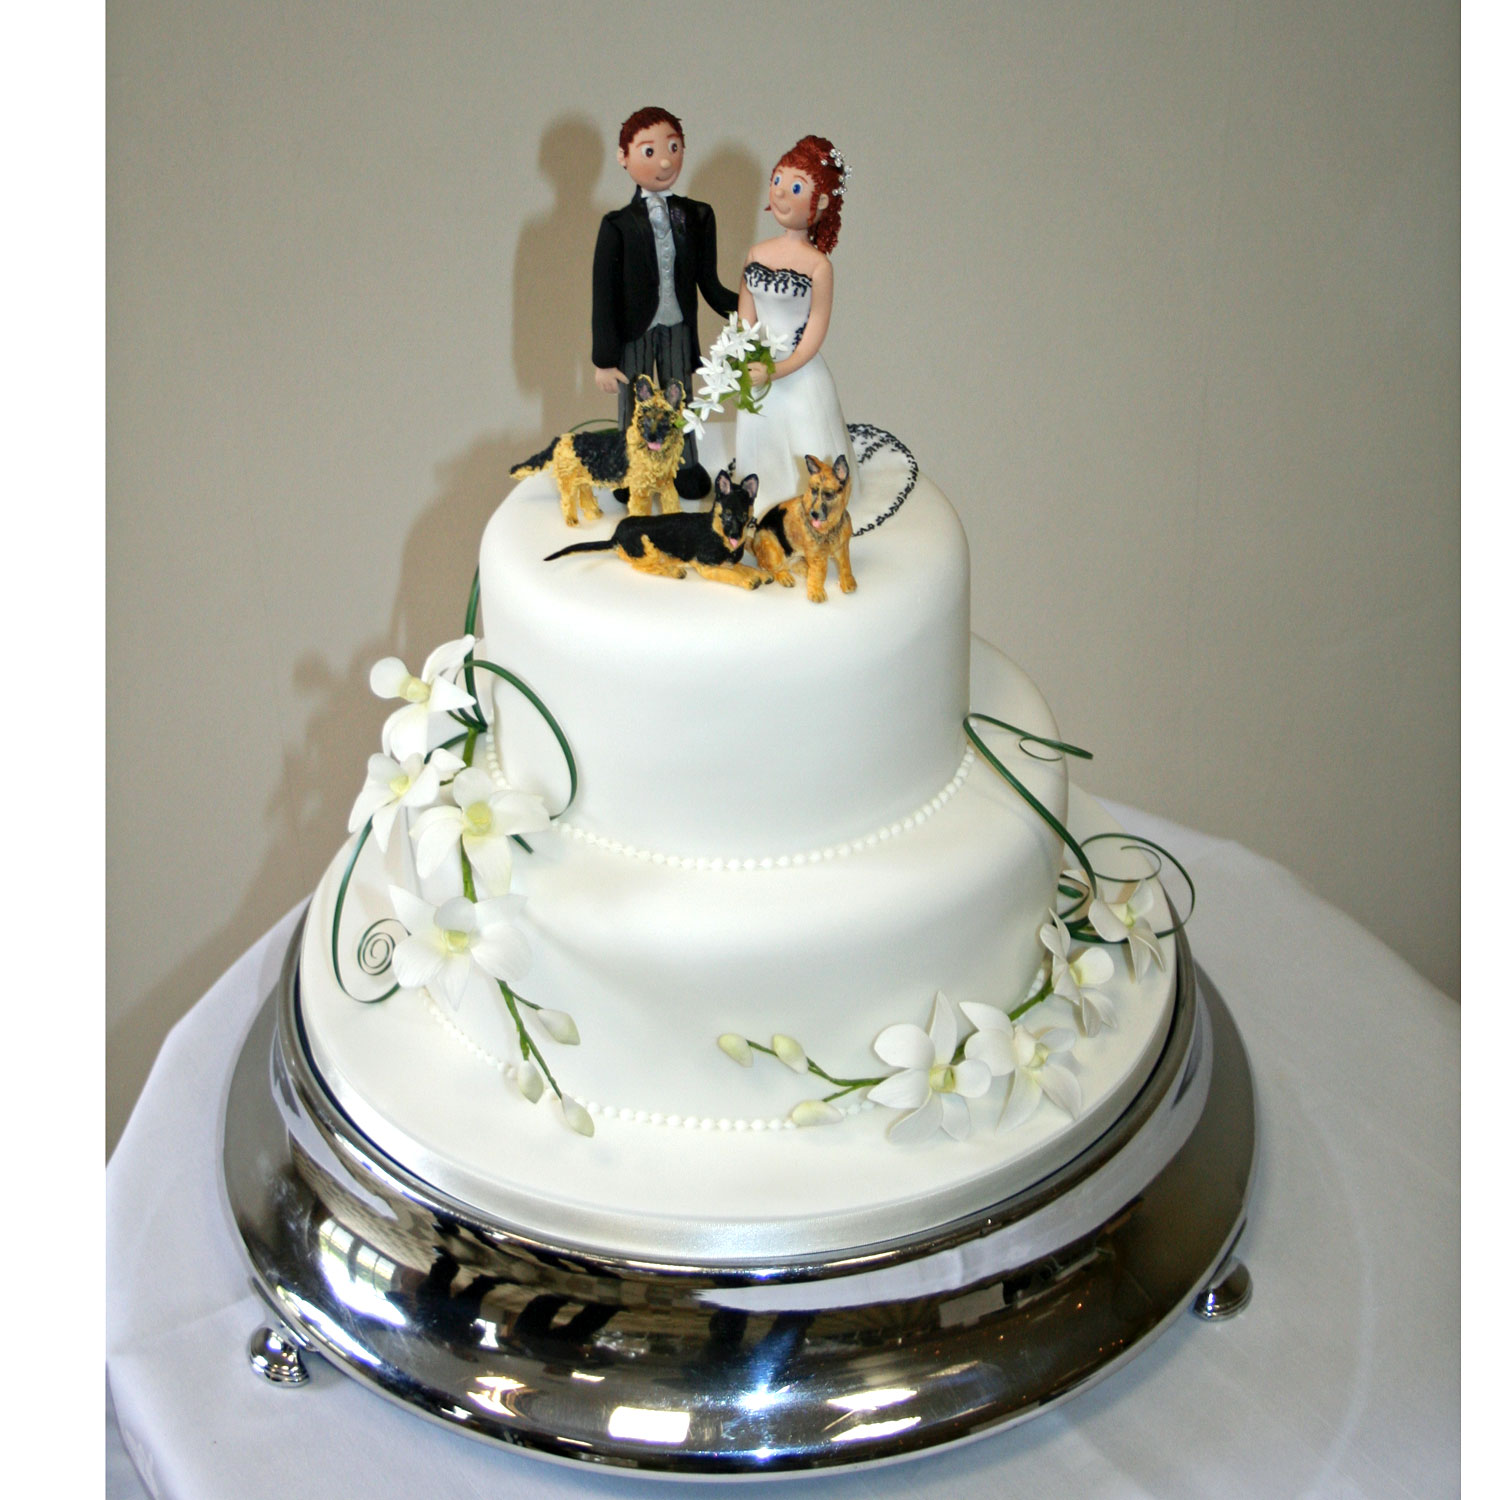 Sheperds Bespoke Wedding Cakes With Personalised Bride And